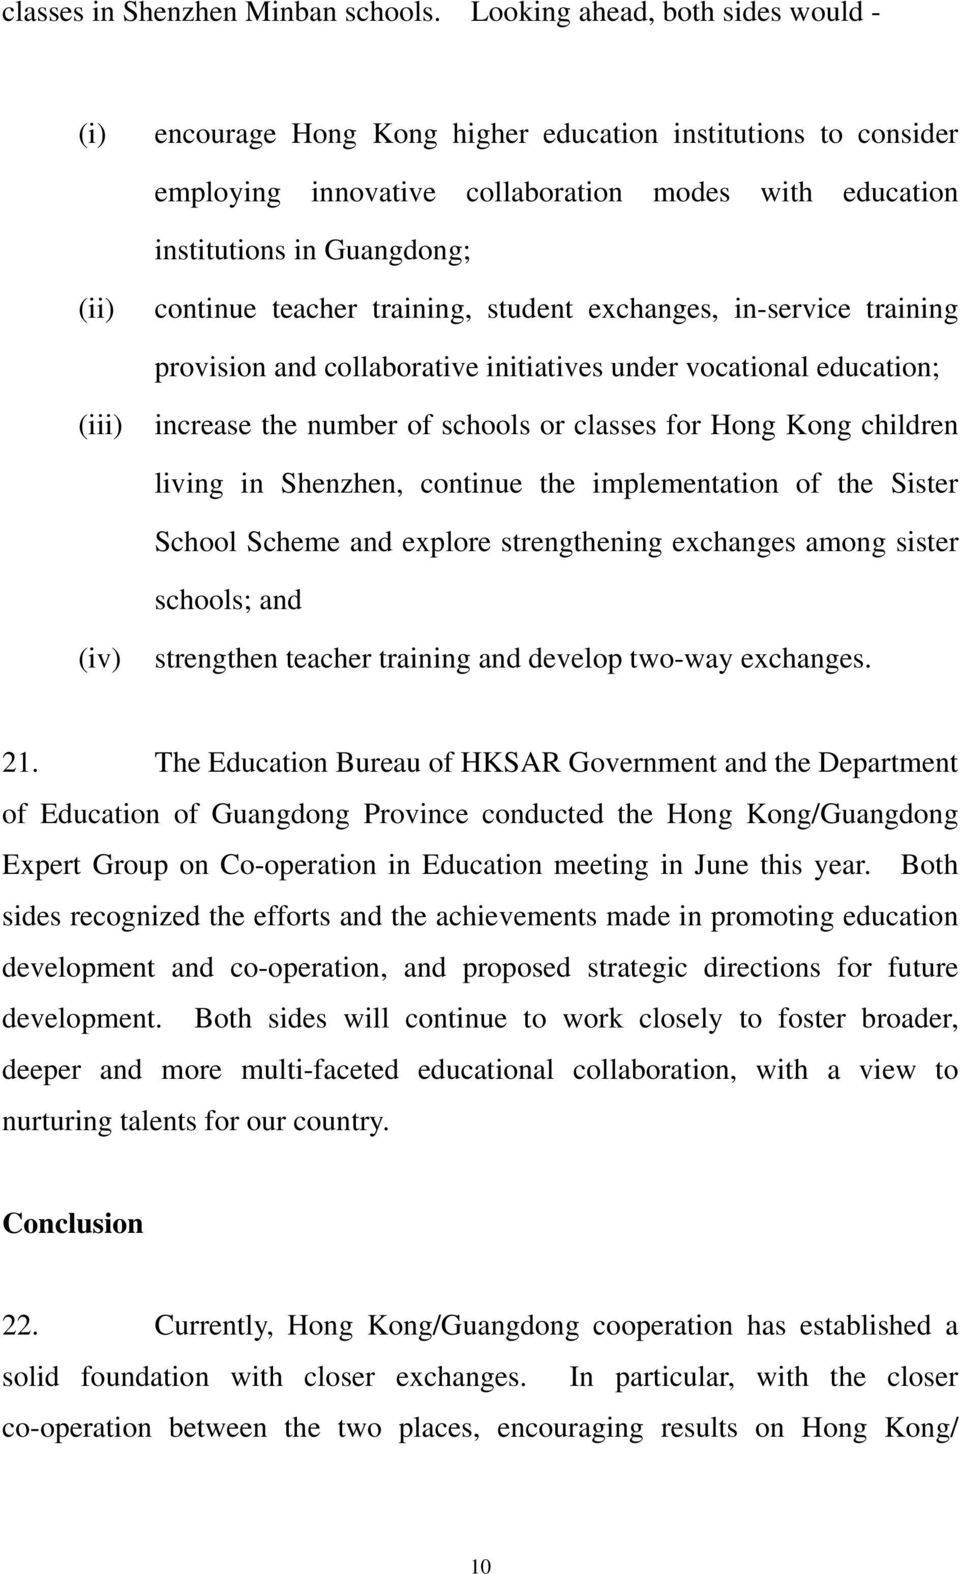 teacher training, student exchanges, in-service training provision and collaborative initiatives under vocational education; (iii) increase the number of schools or classes for Hong Kong children